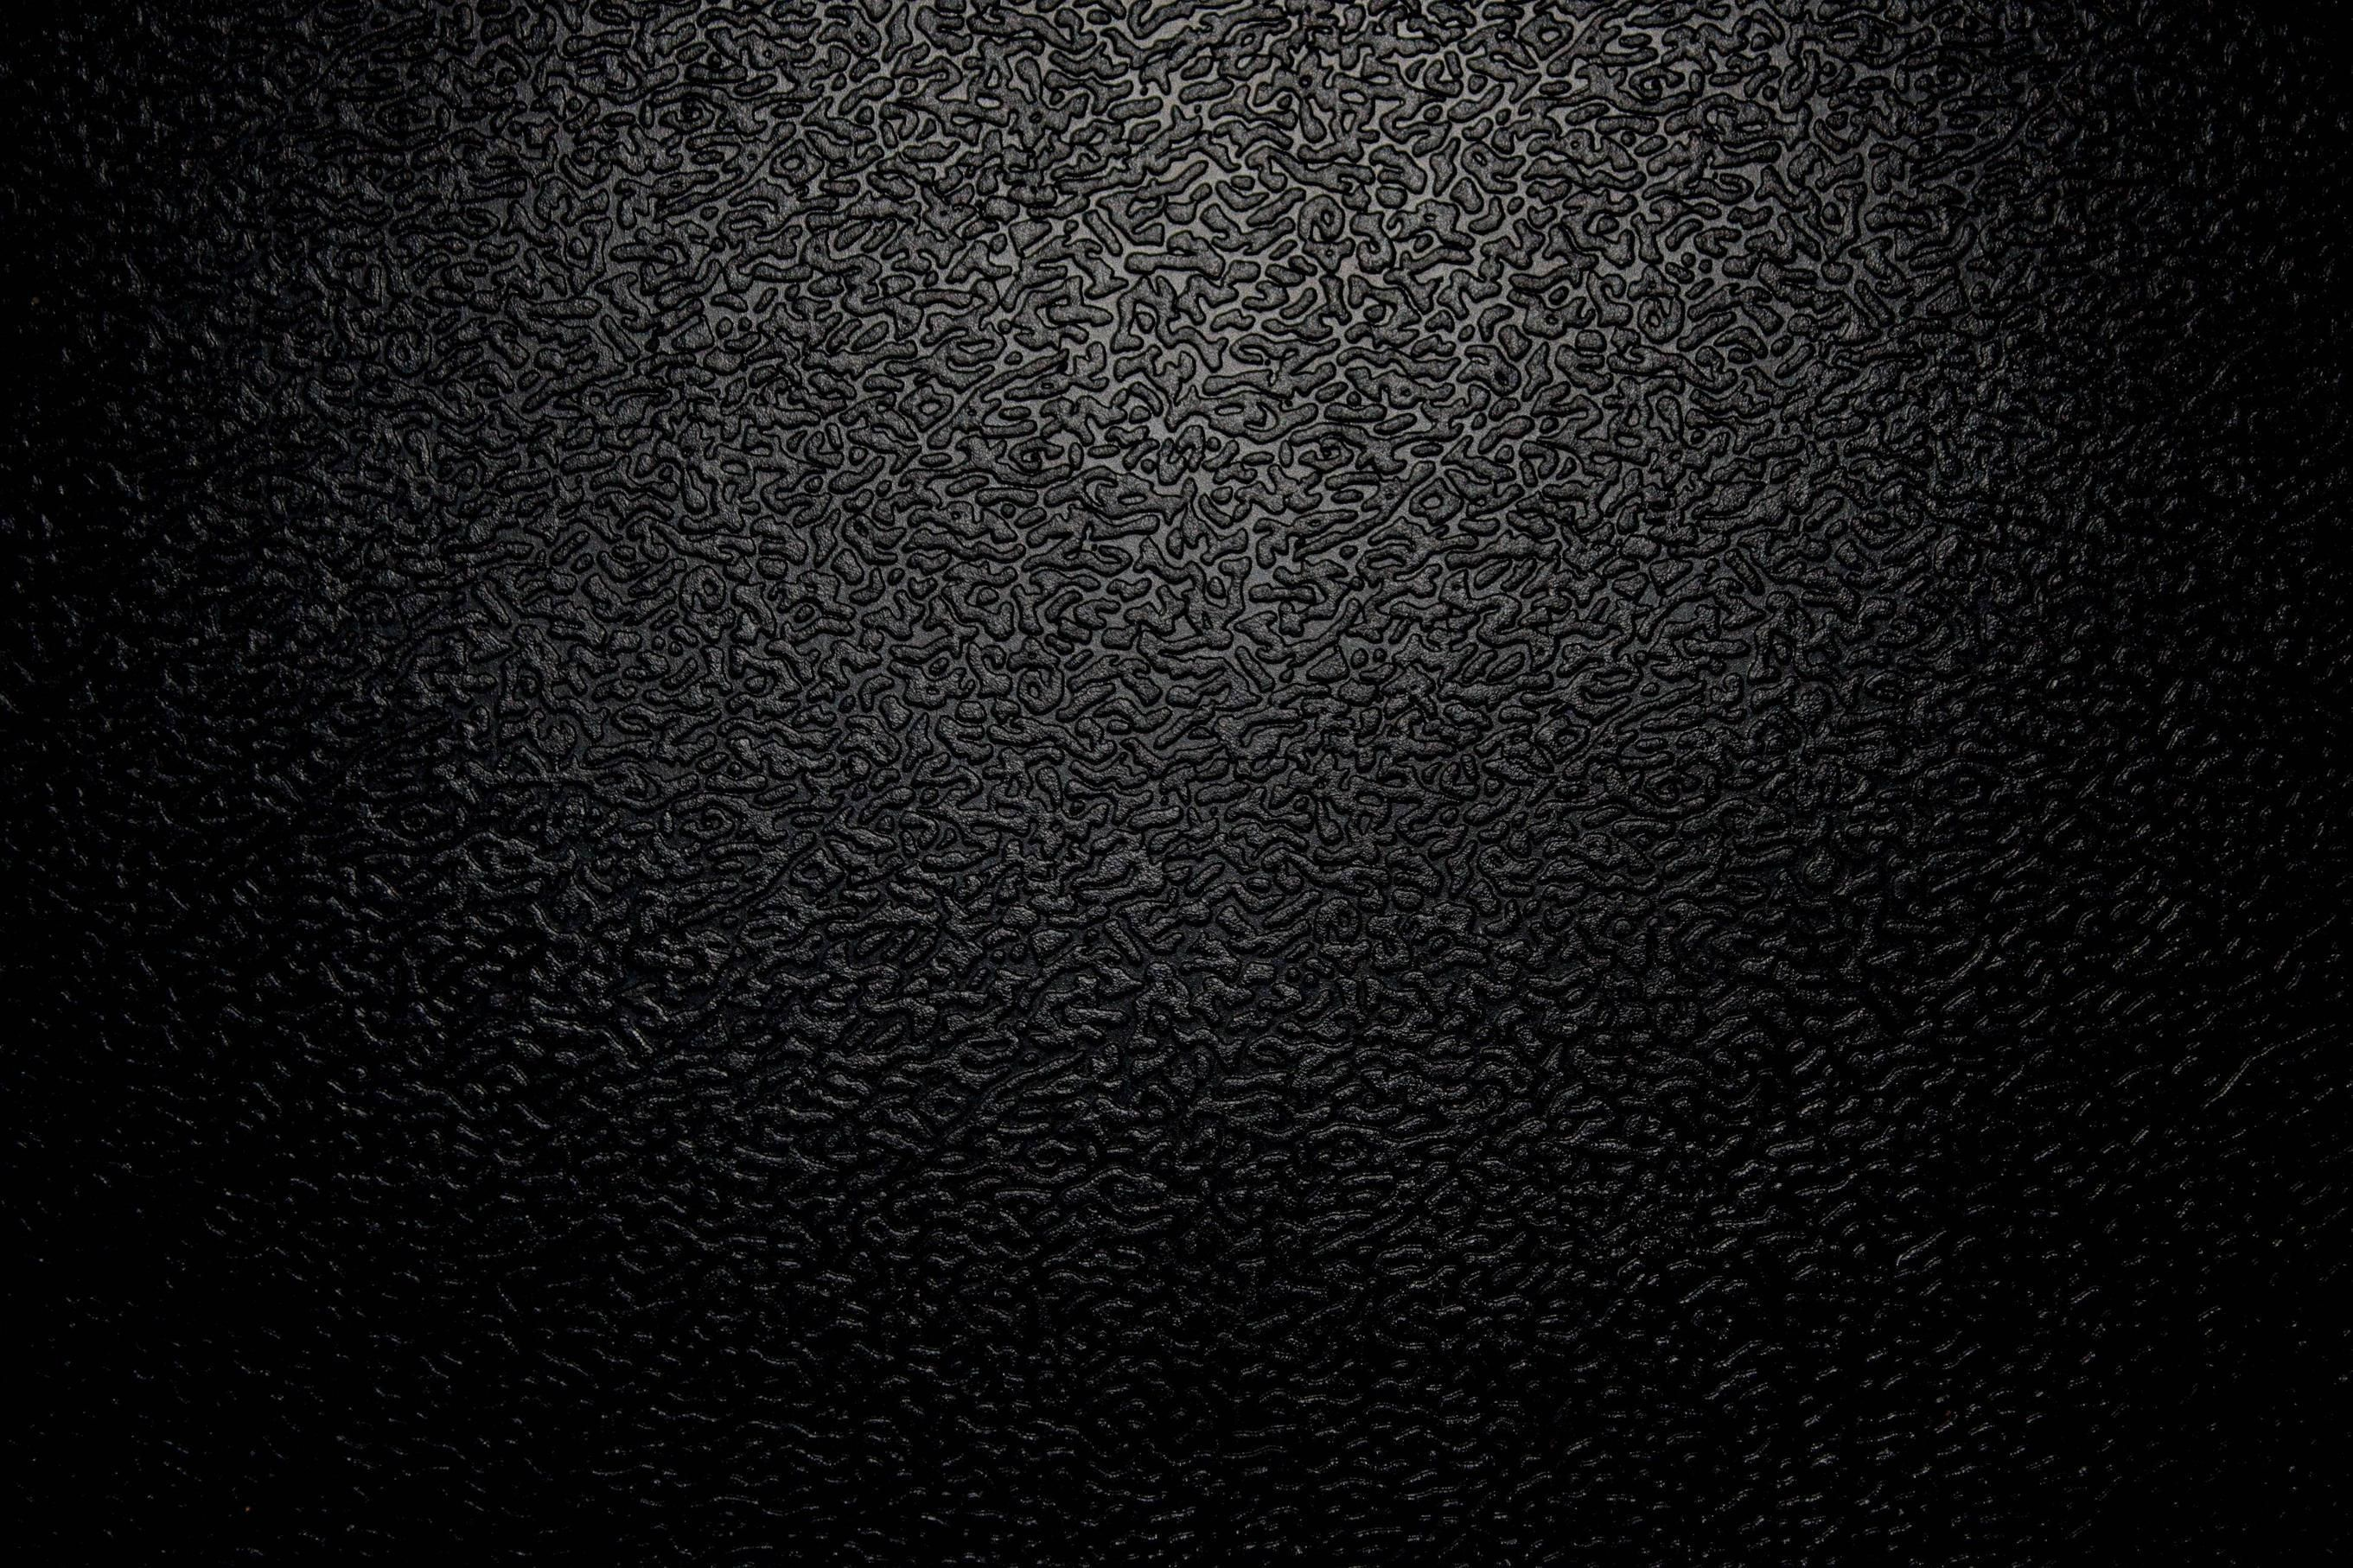 Black And White Textured Wallpaper 8 Textured Wallpaper Hd Free Black Phone Wallpaper Black Textured Wallpaper Solid Black Wallpaper